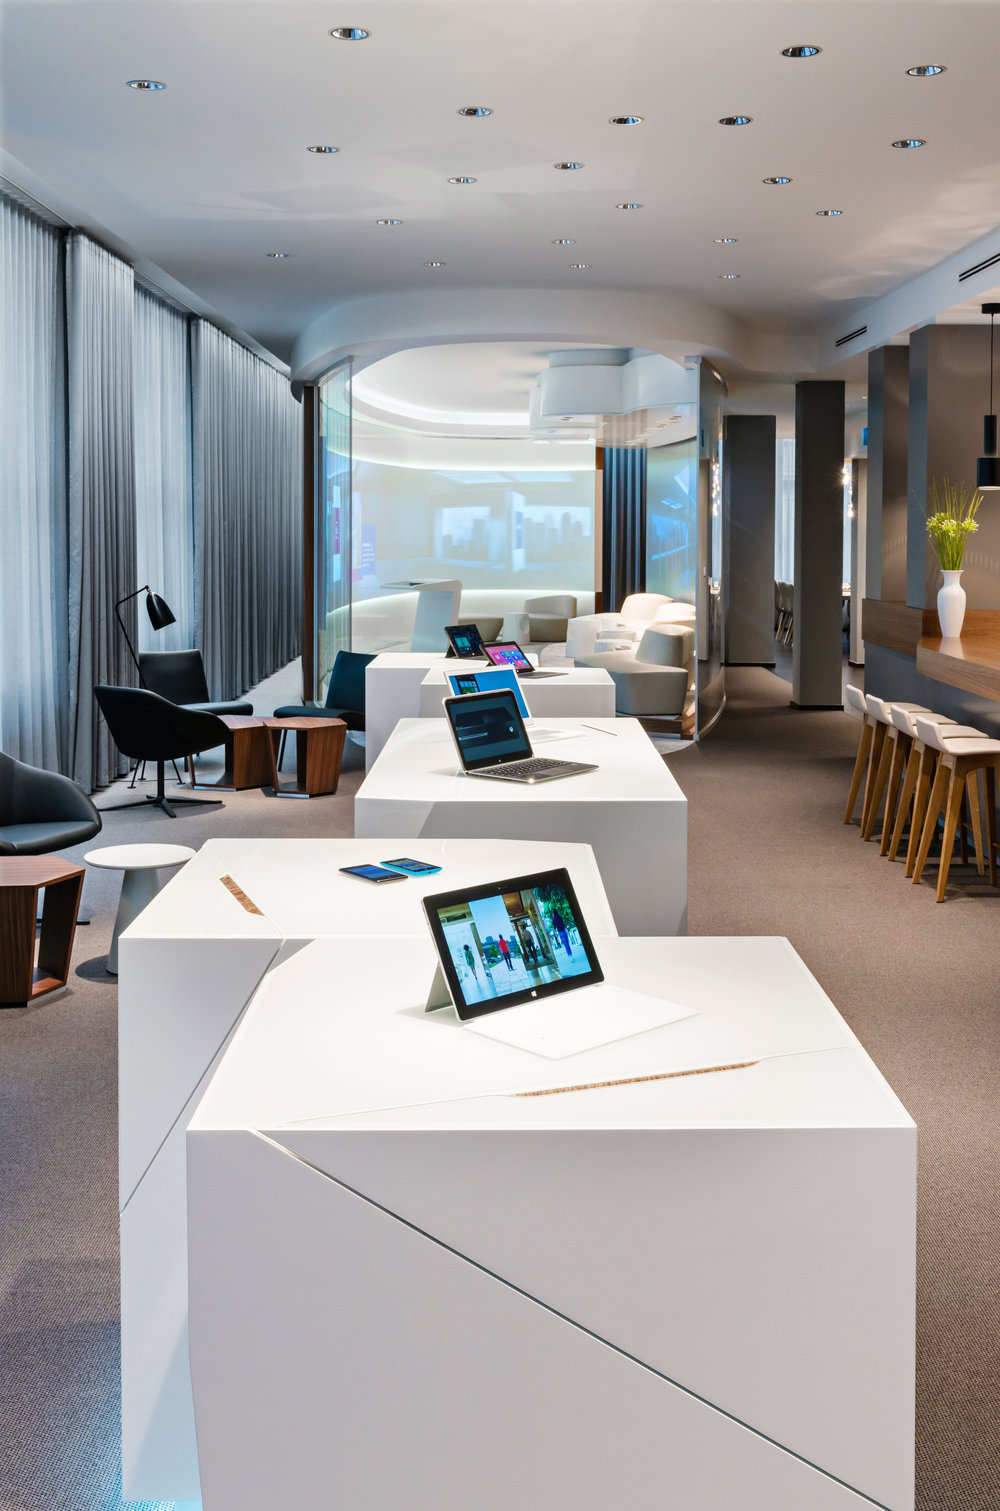 microsoft-center_coorporate-interior-design_coordination-berlin_11.jpg